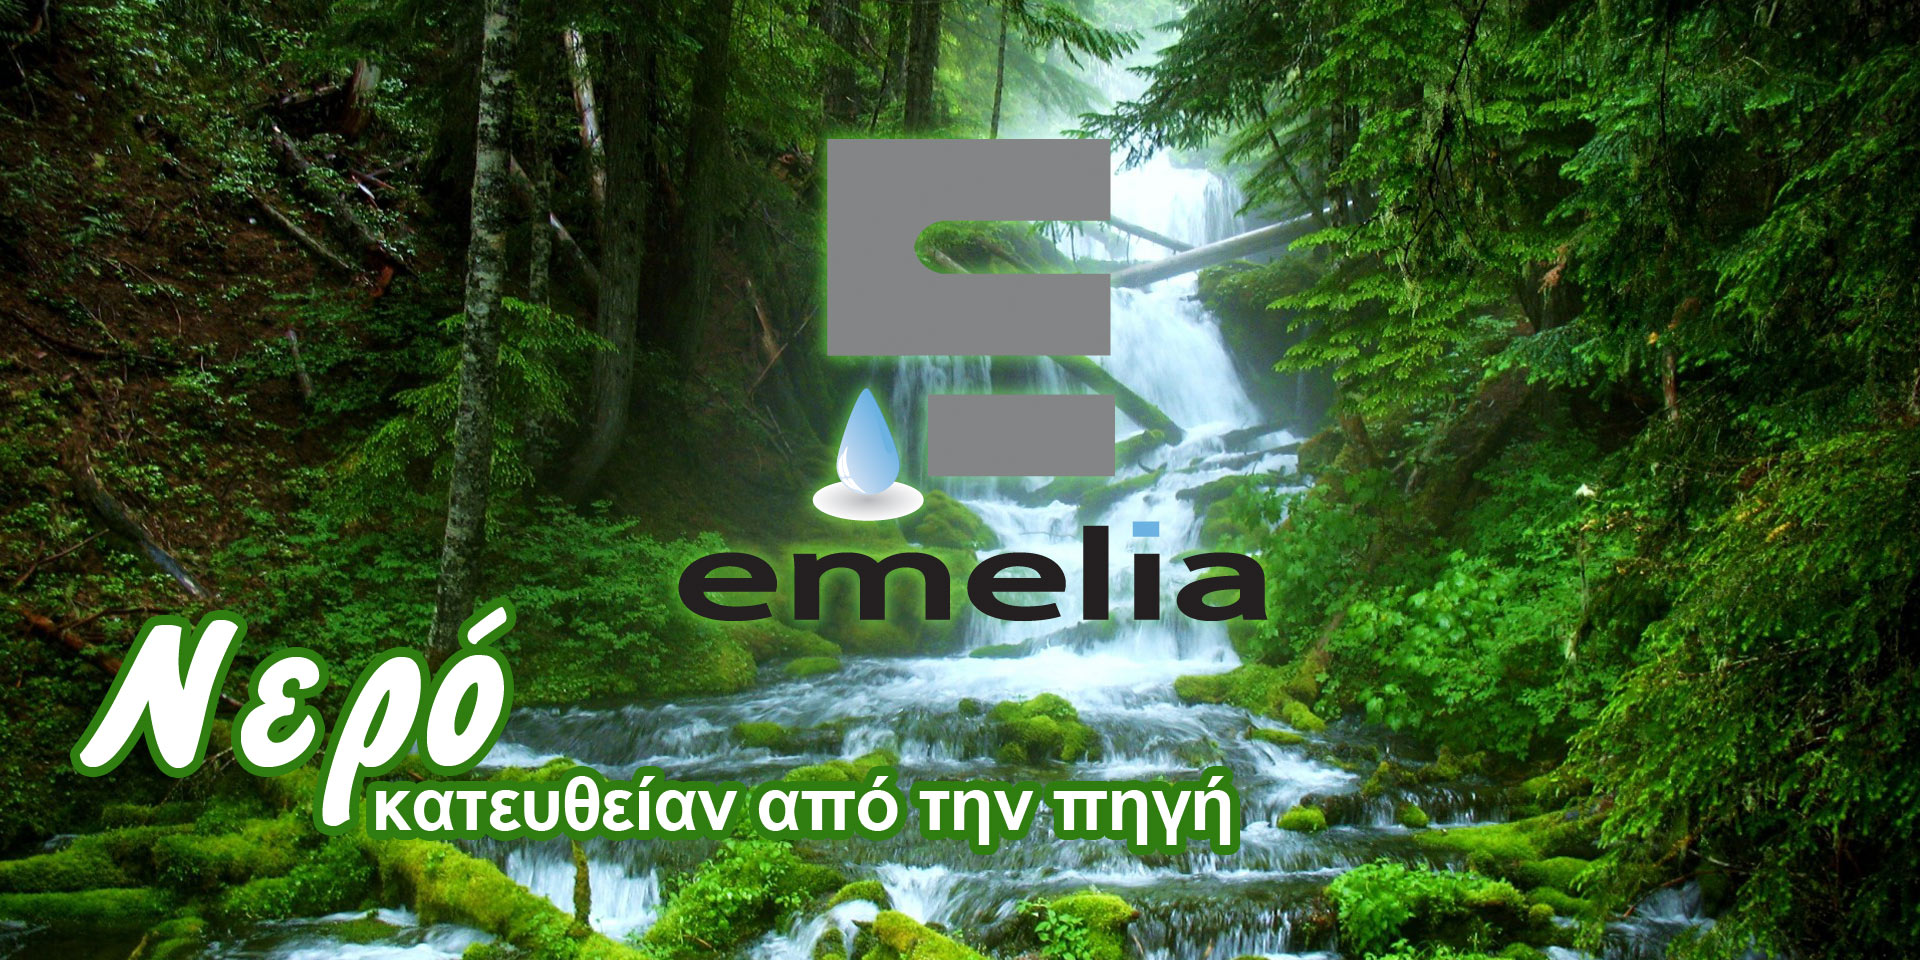 emelia-water-nero-apo-tin-pigi-with-logo